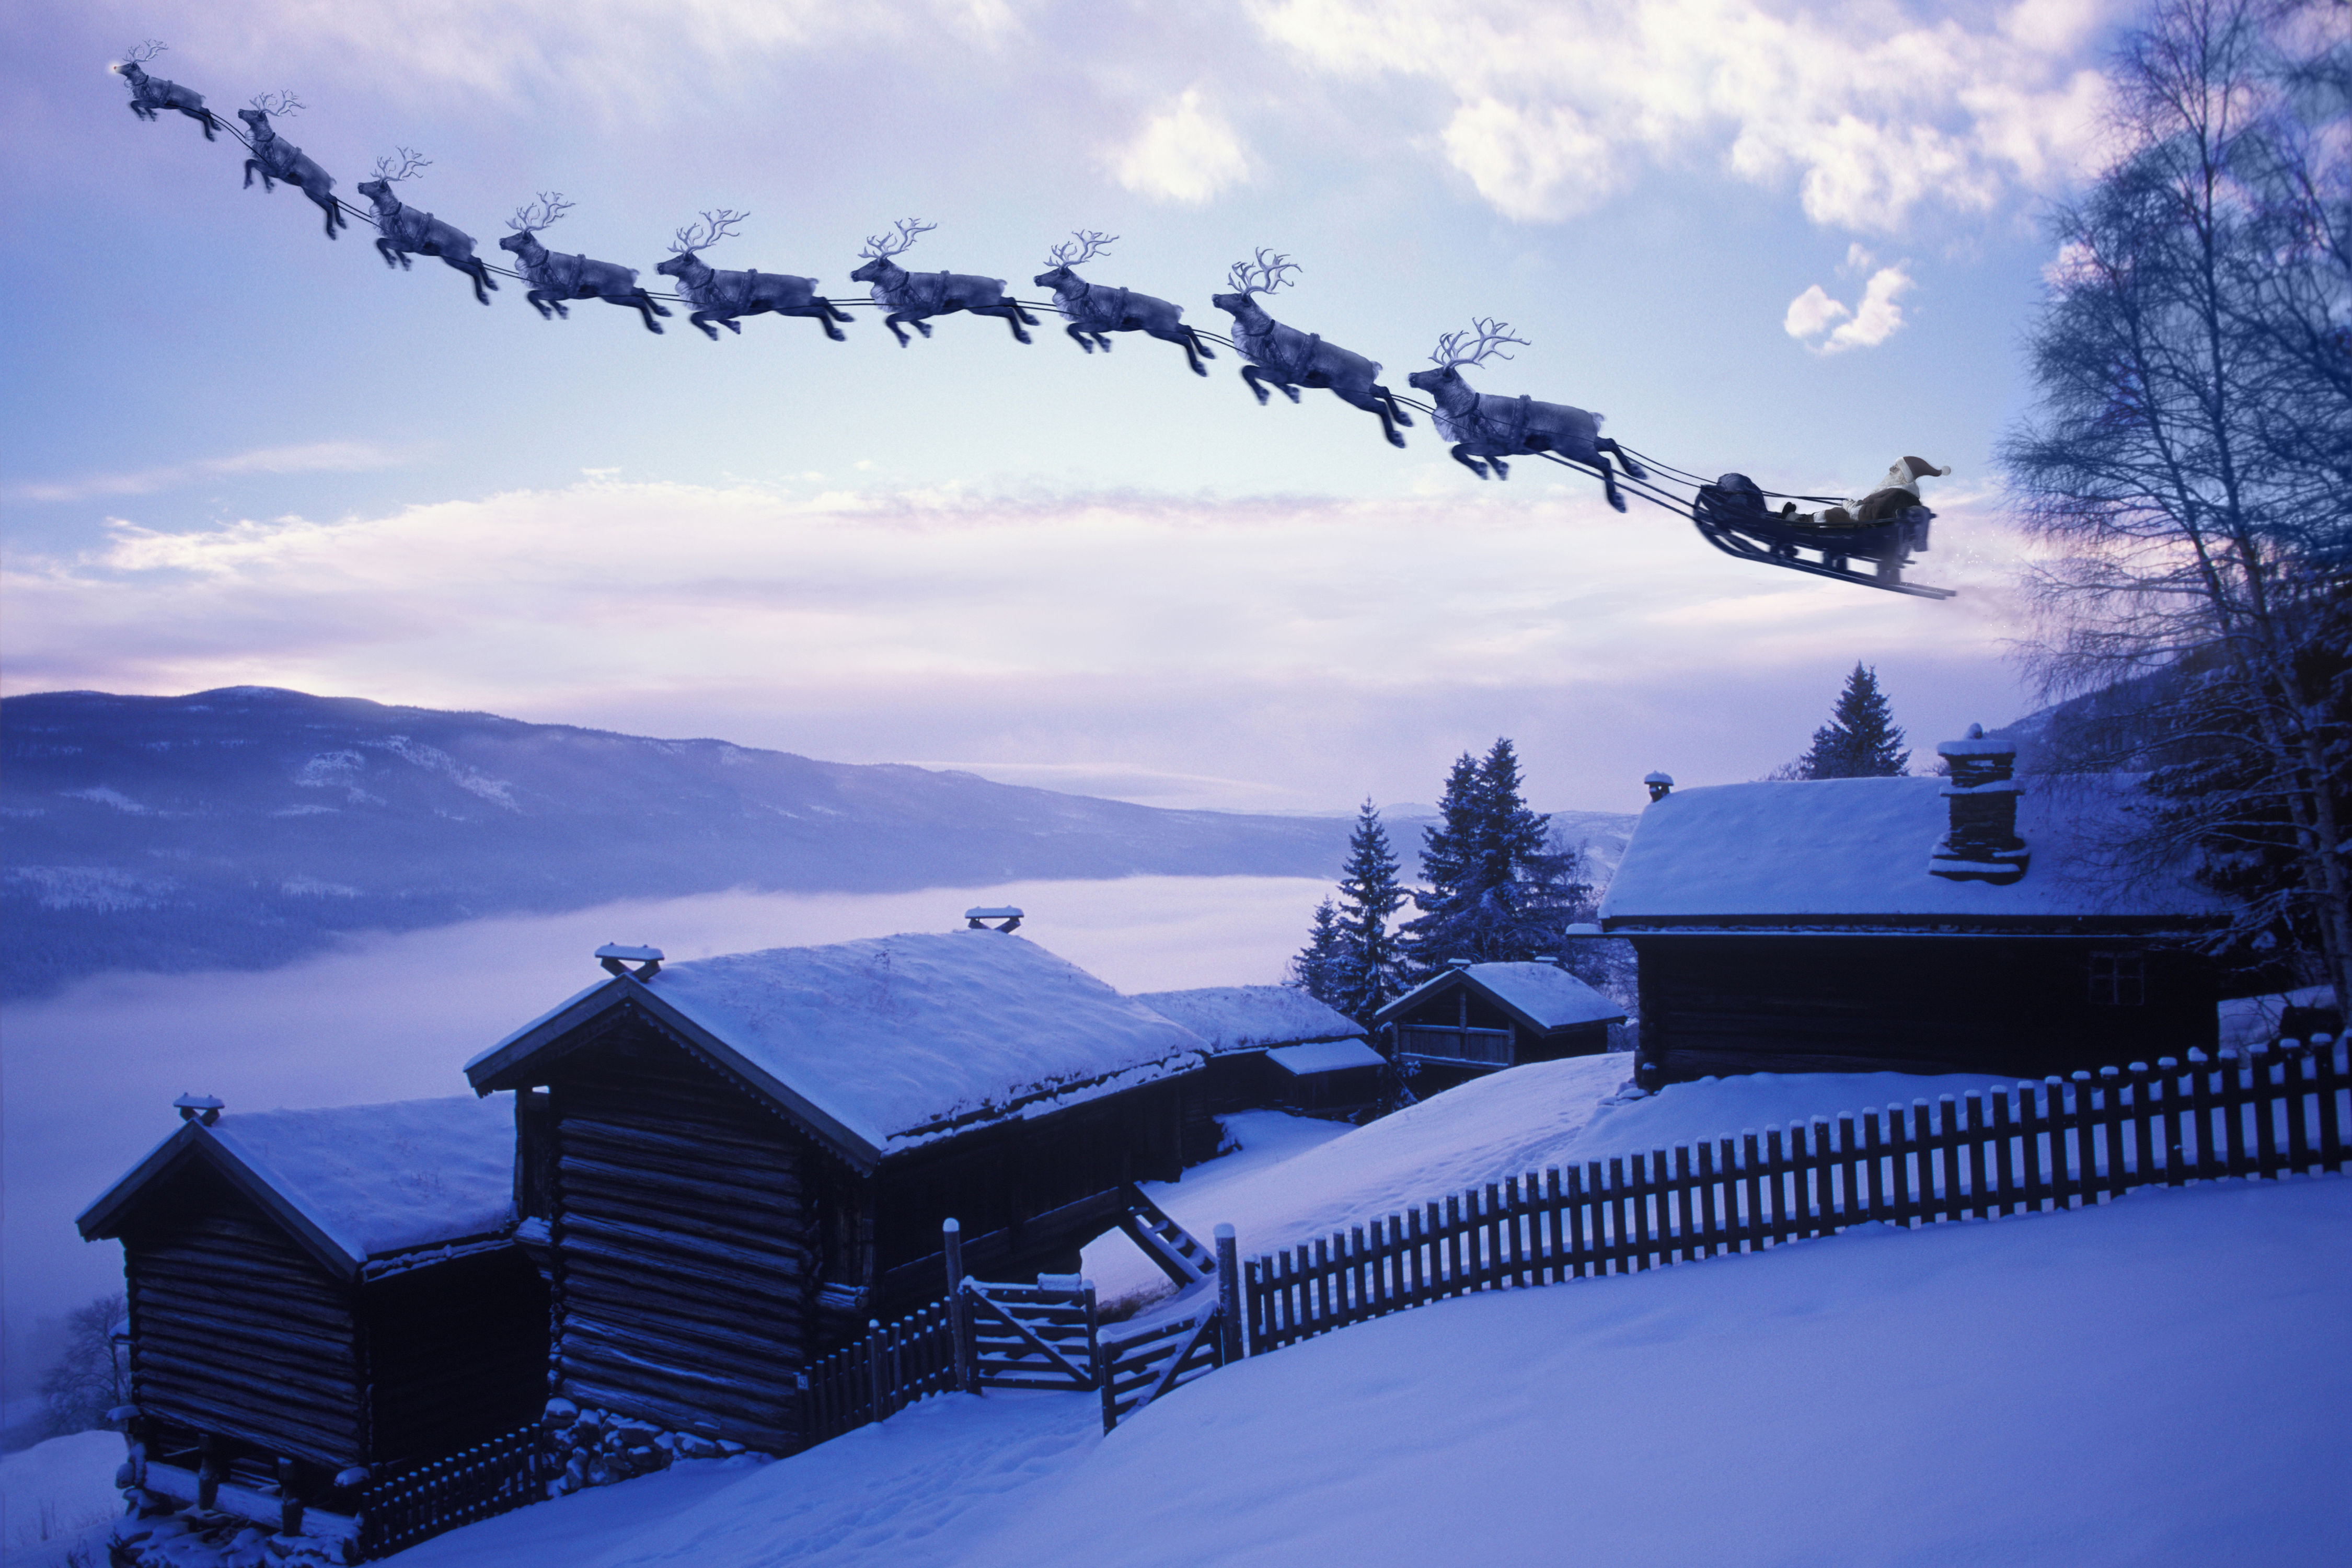 When Is Santa Claus Arriving at Your House on Christmas Eve?